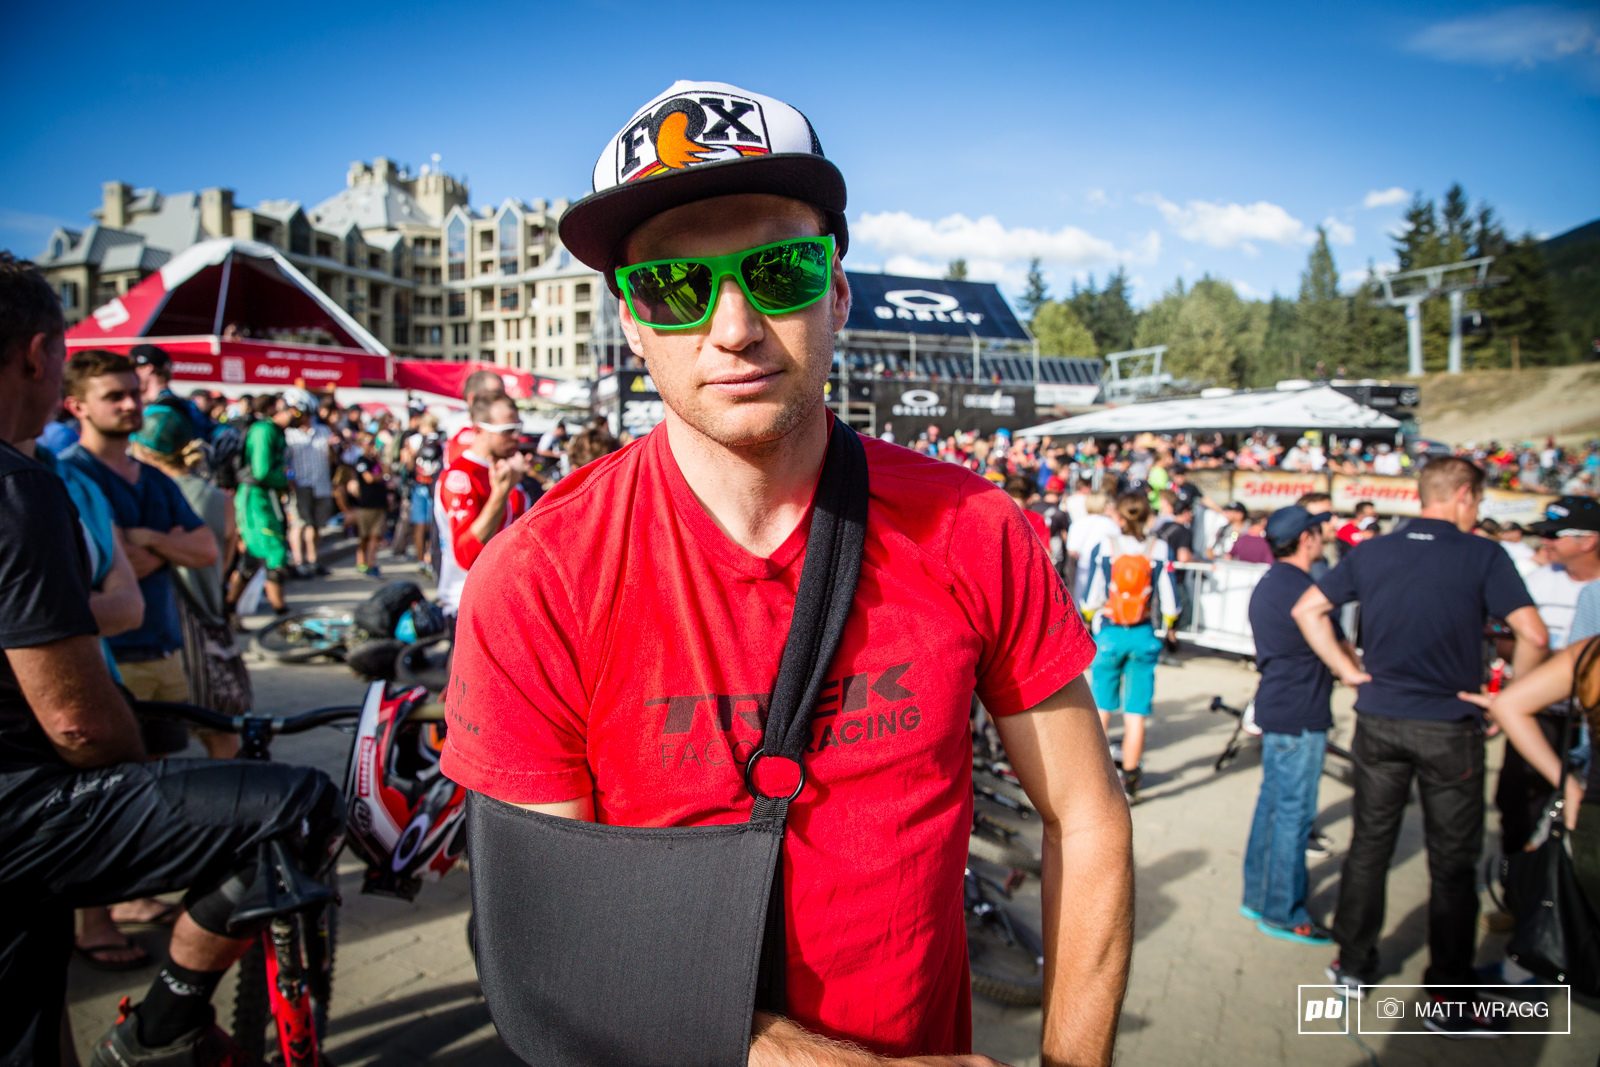 It was heartbreak for Justin Leov today. He went down on one of the wooden ladder bridges on stage one dislocating his shoulder badly. He is booked in to see the doctor tomorrow to find out what the next steps are but it s certainly the end of his title hopes and most likely his season.